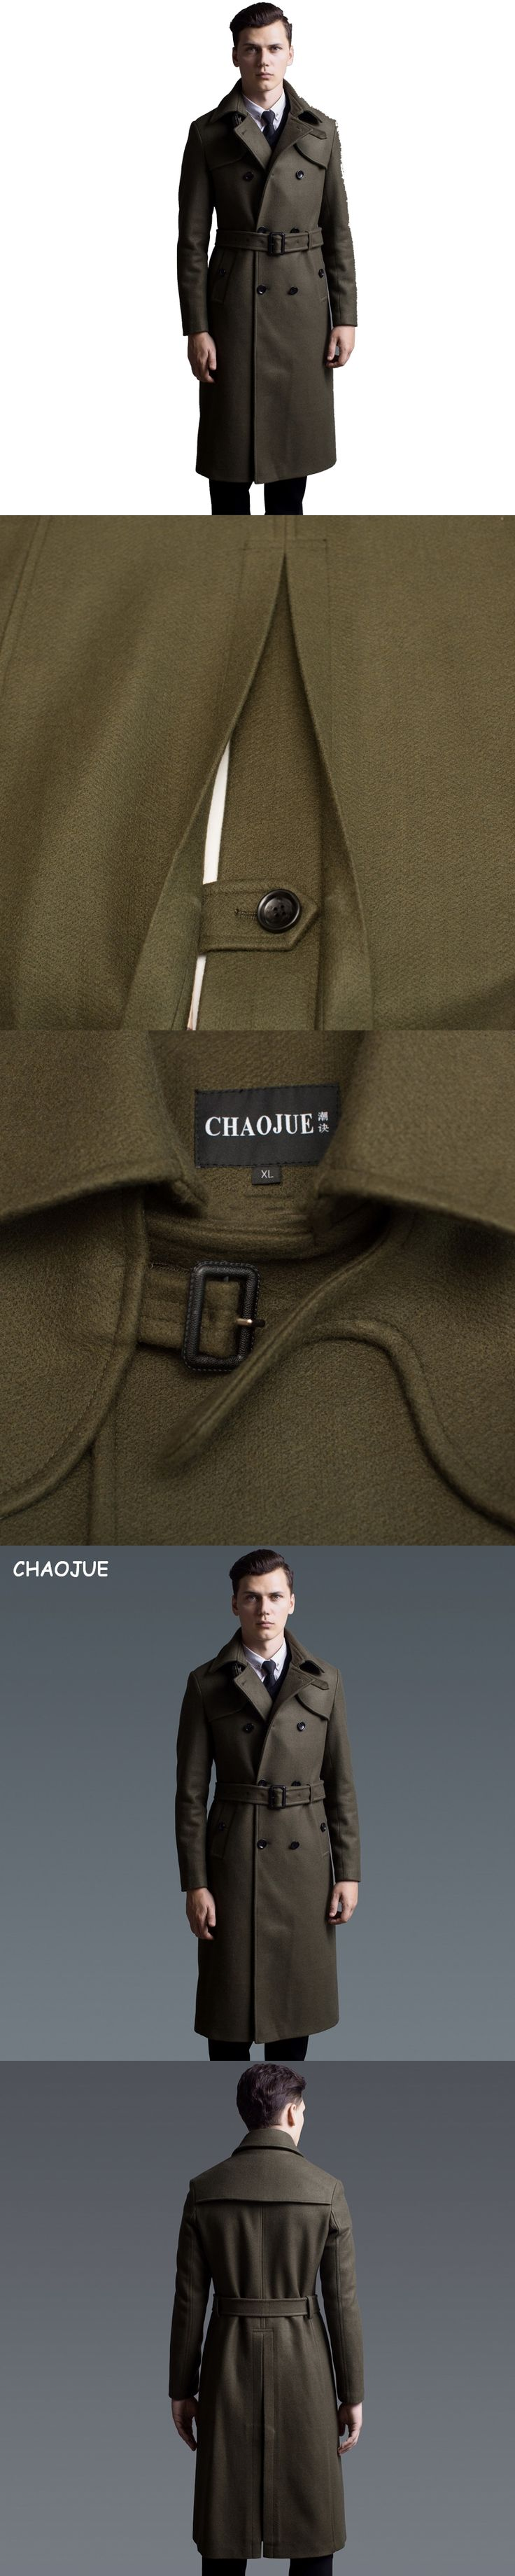 CHAOJUE Extra long wool coat male British double-breasted woolen trenchcoat mens slim fit classic army green warm pea coat